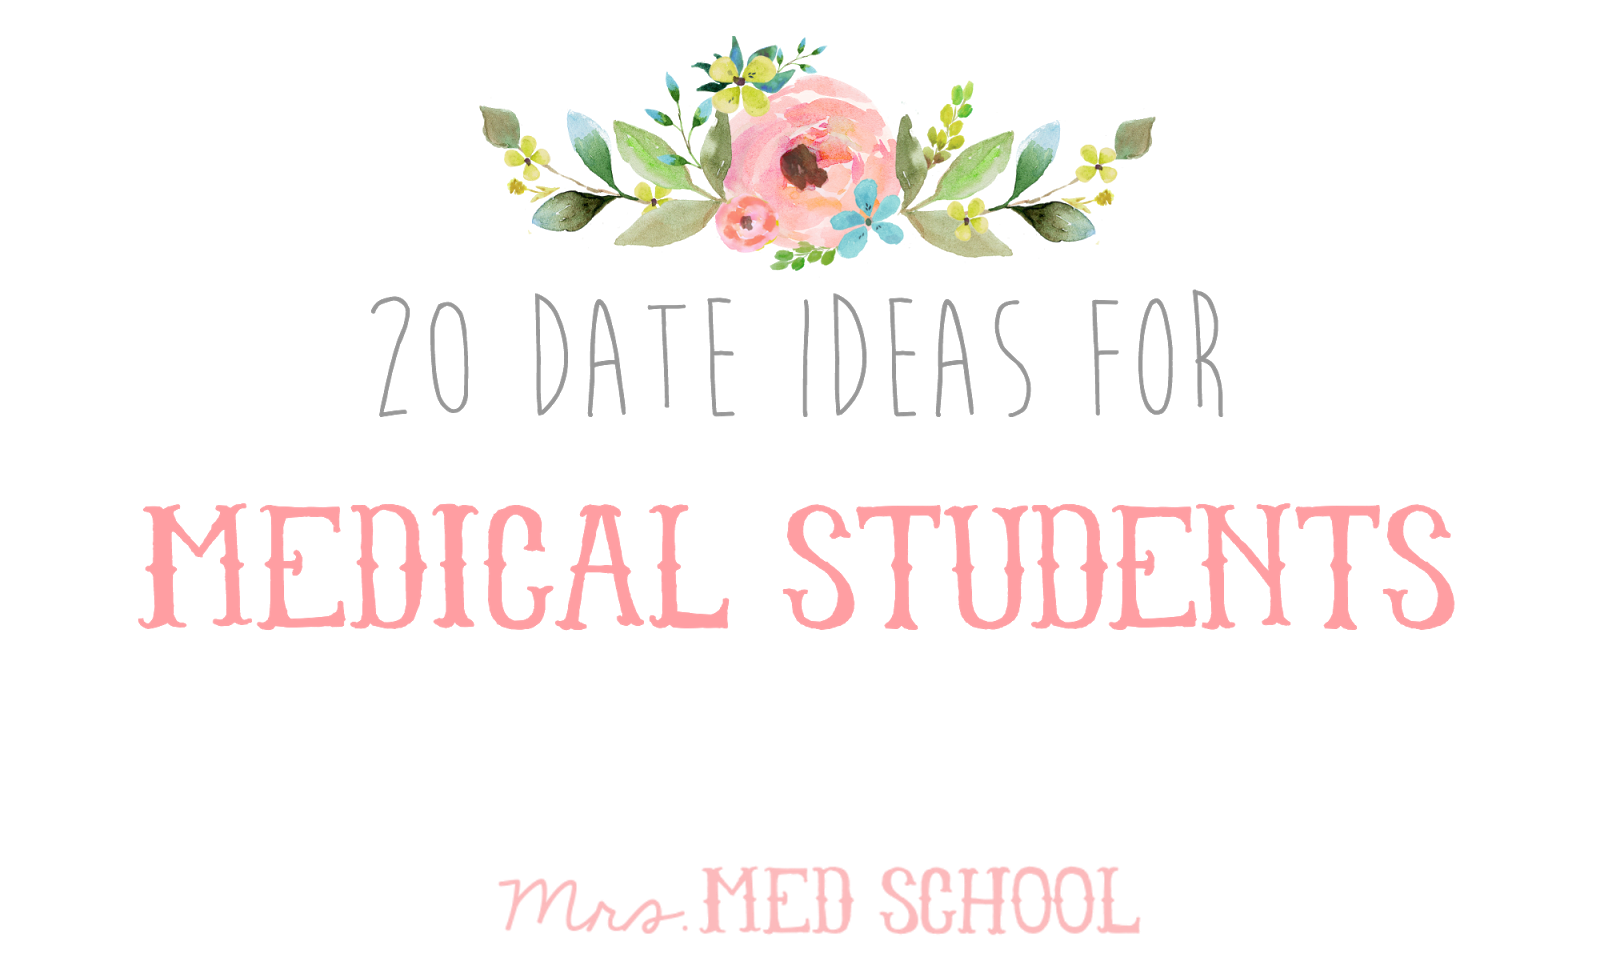 dating medical students And of course the answer is no, although anyone who marries a medical student has to realize that they are taking on a whole lot of student loans and a very time-demanding career – dating or marrying you is a big commitment for them, too.